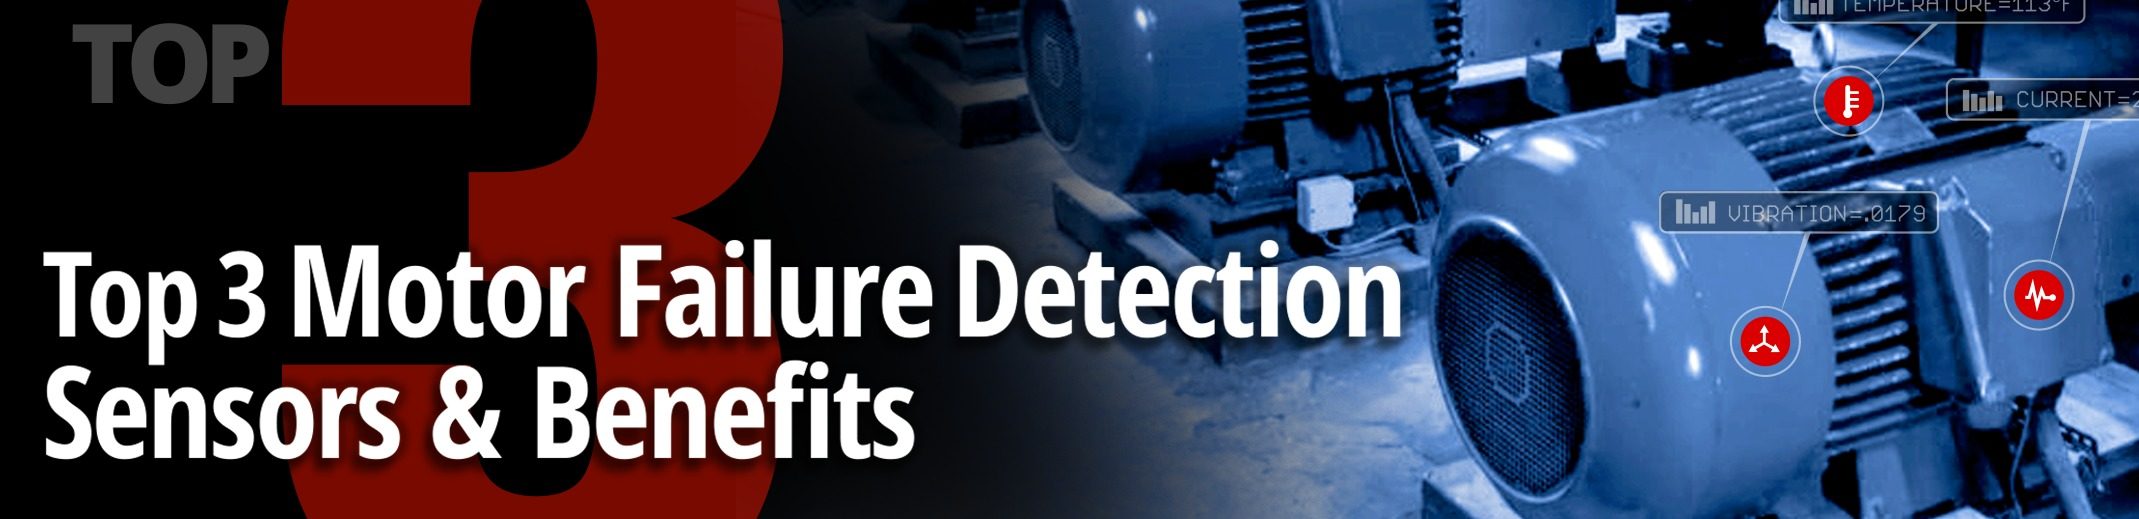 Top 3 Motor Failure Detection Sensors